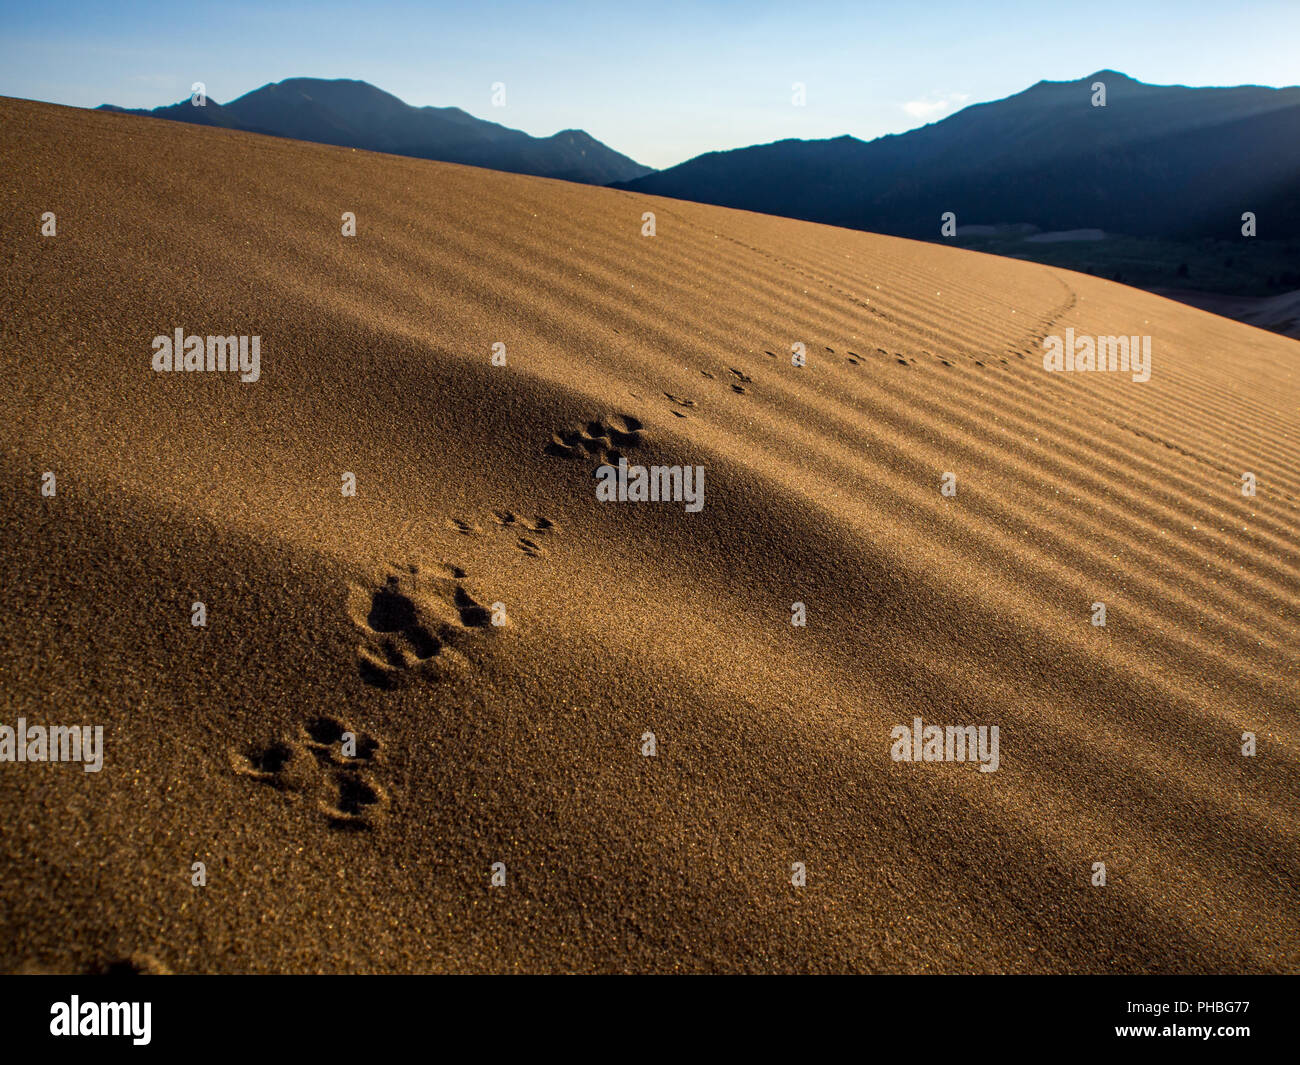 Animal Tracks in the Sand, Tracks along Sand Dune - Stock Image